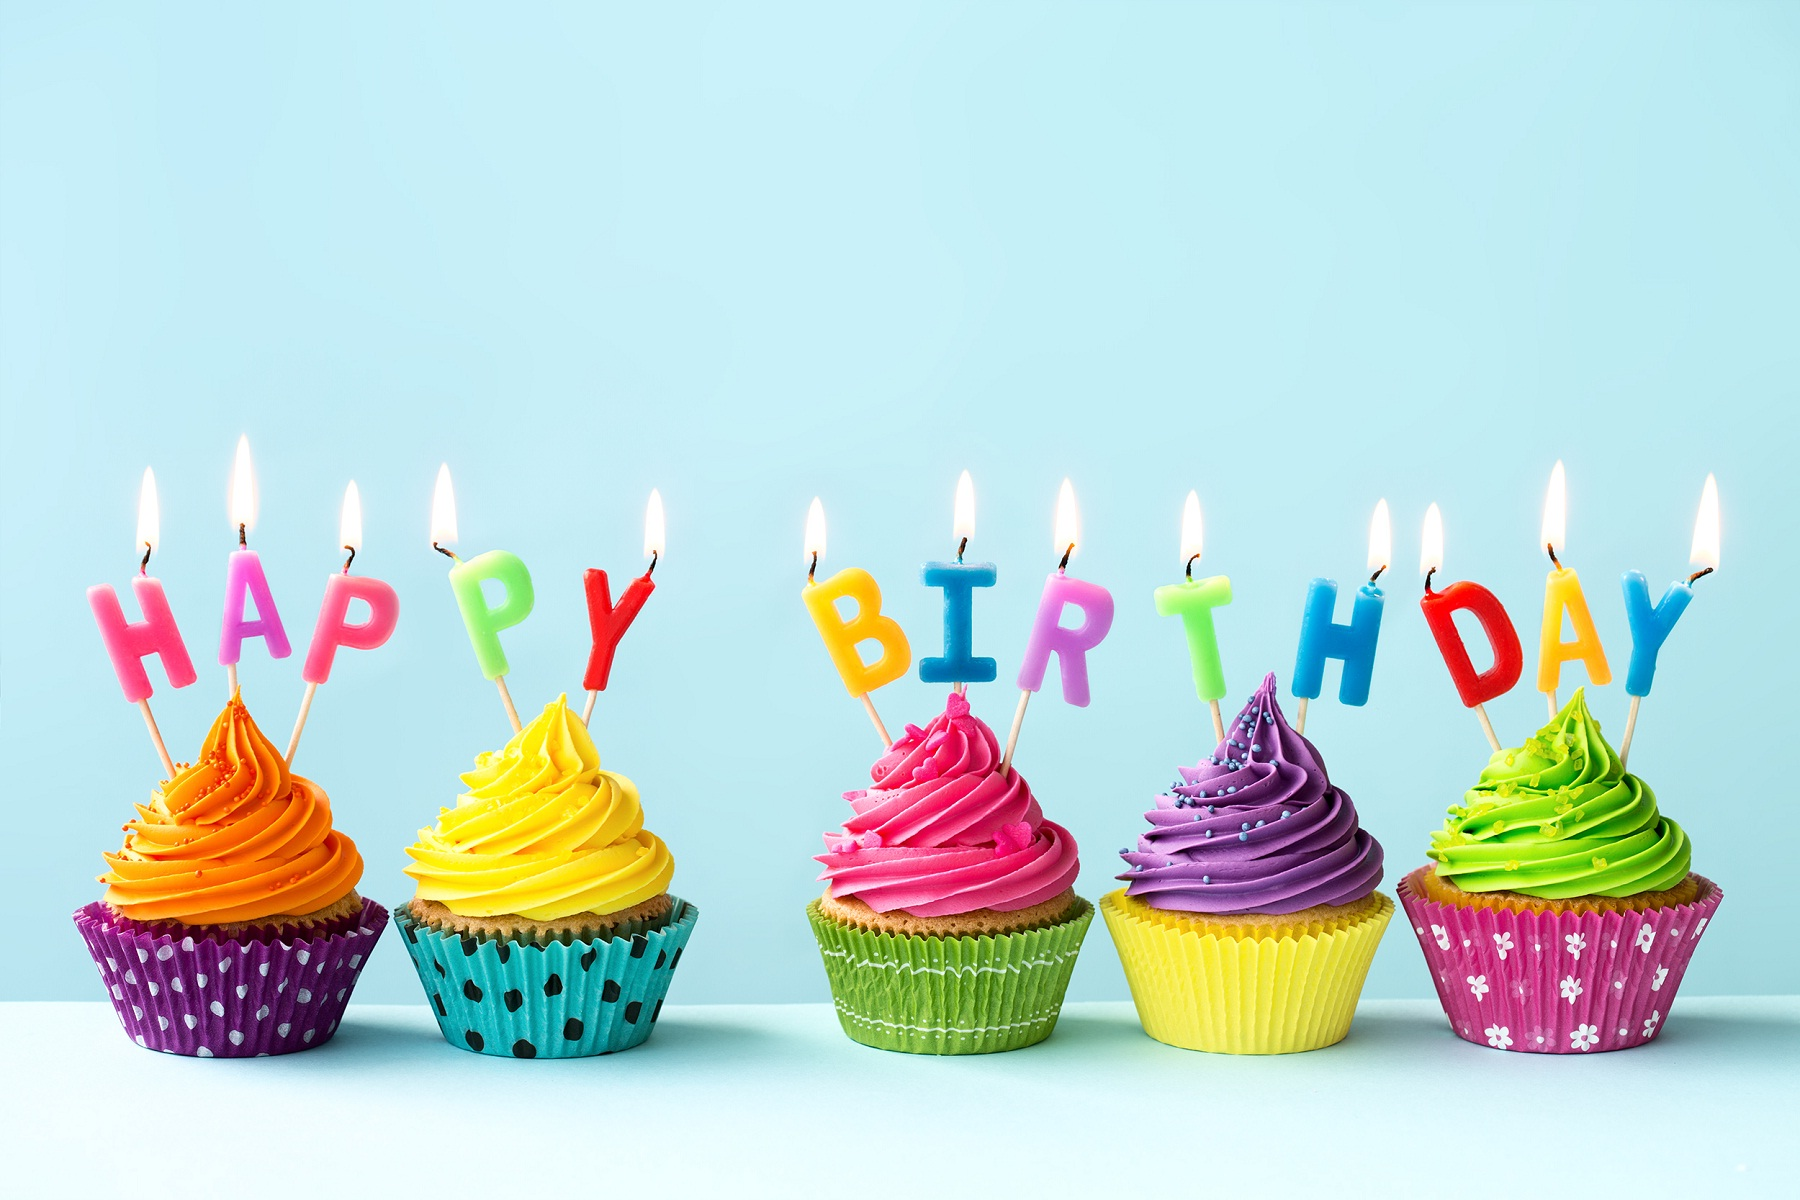 birthday images hd wallpaper ; 51954